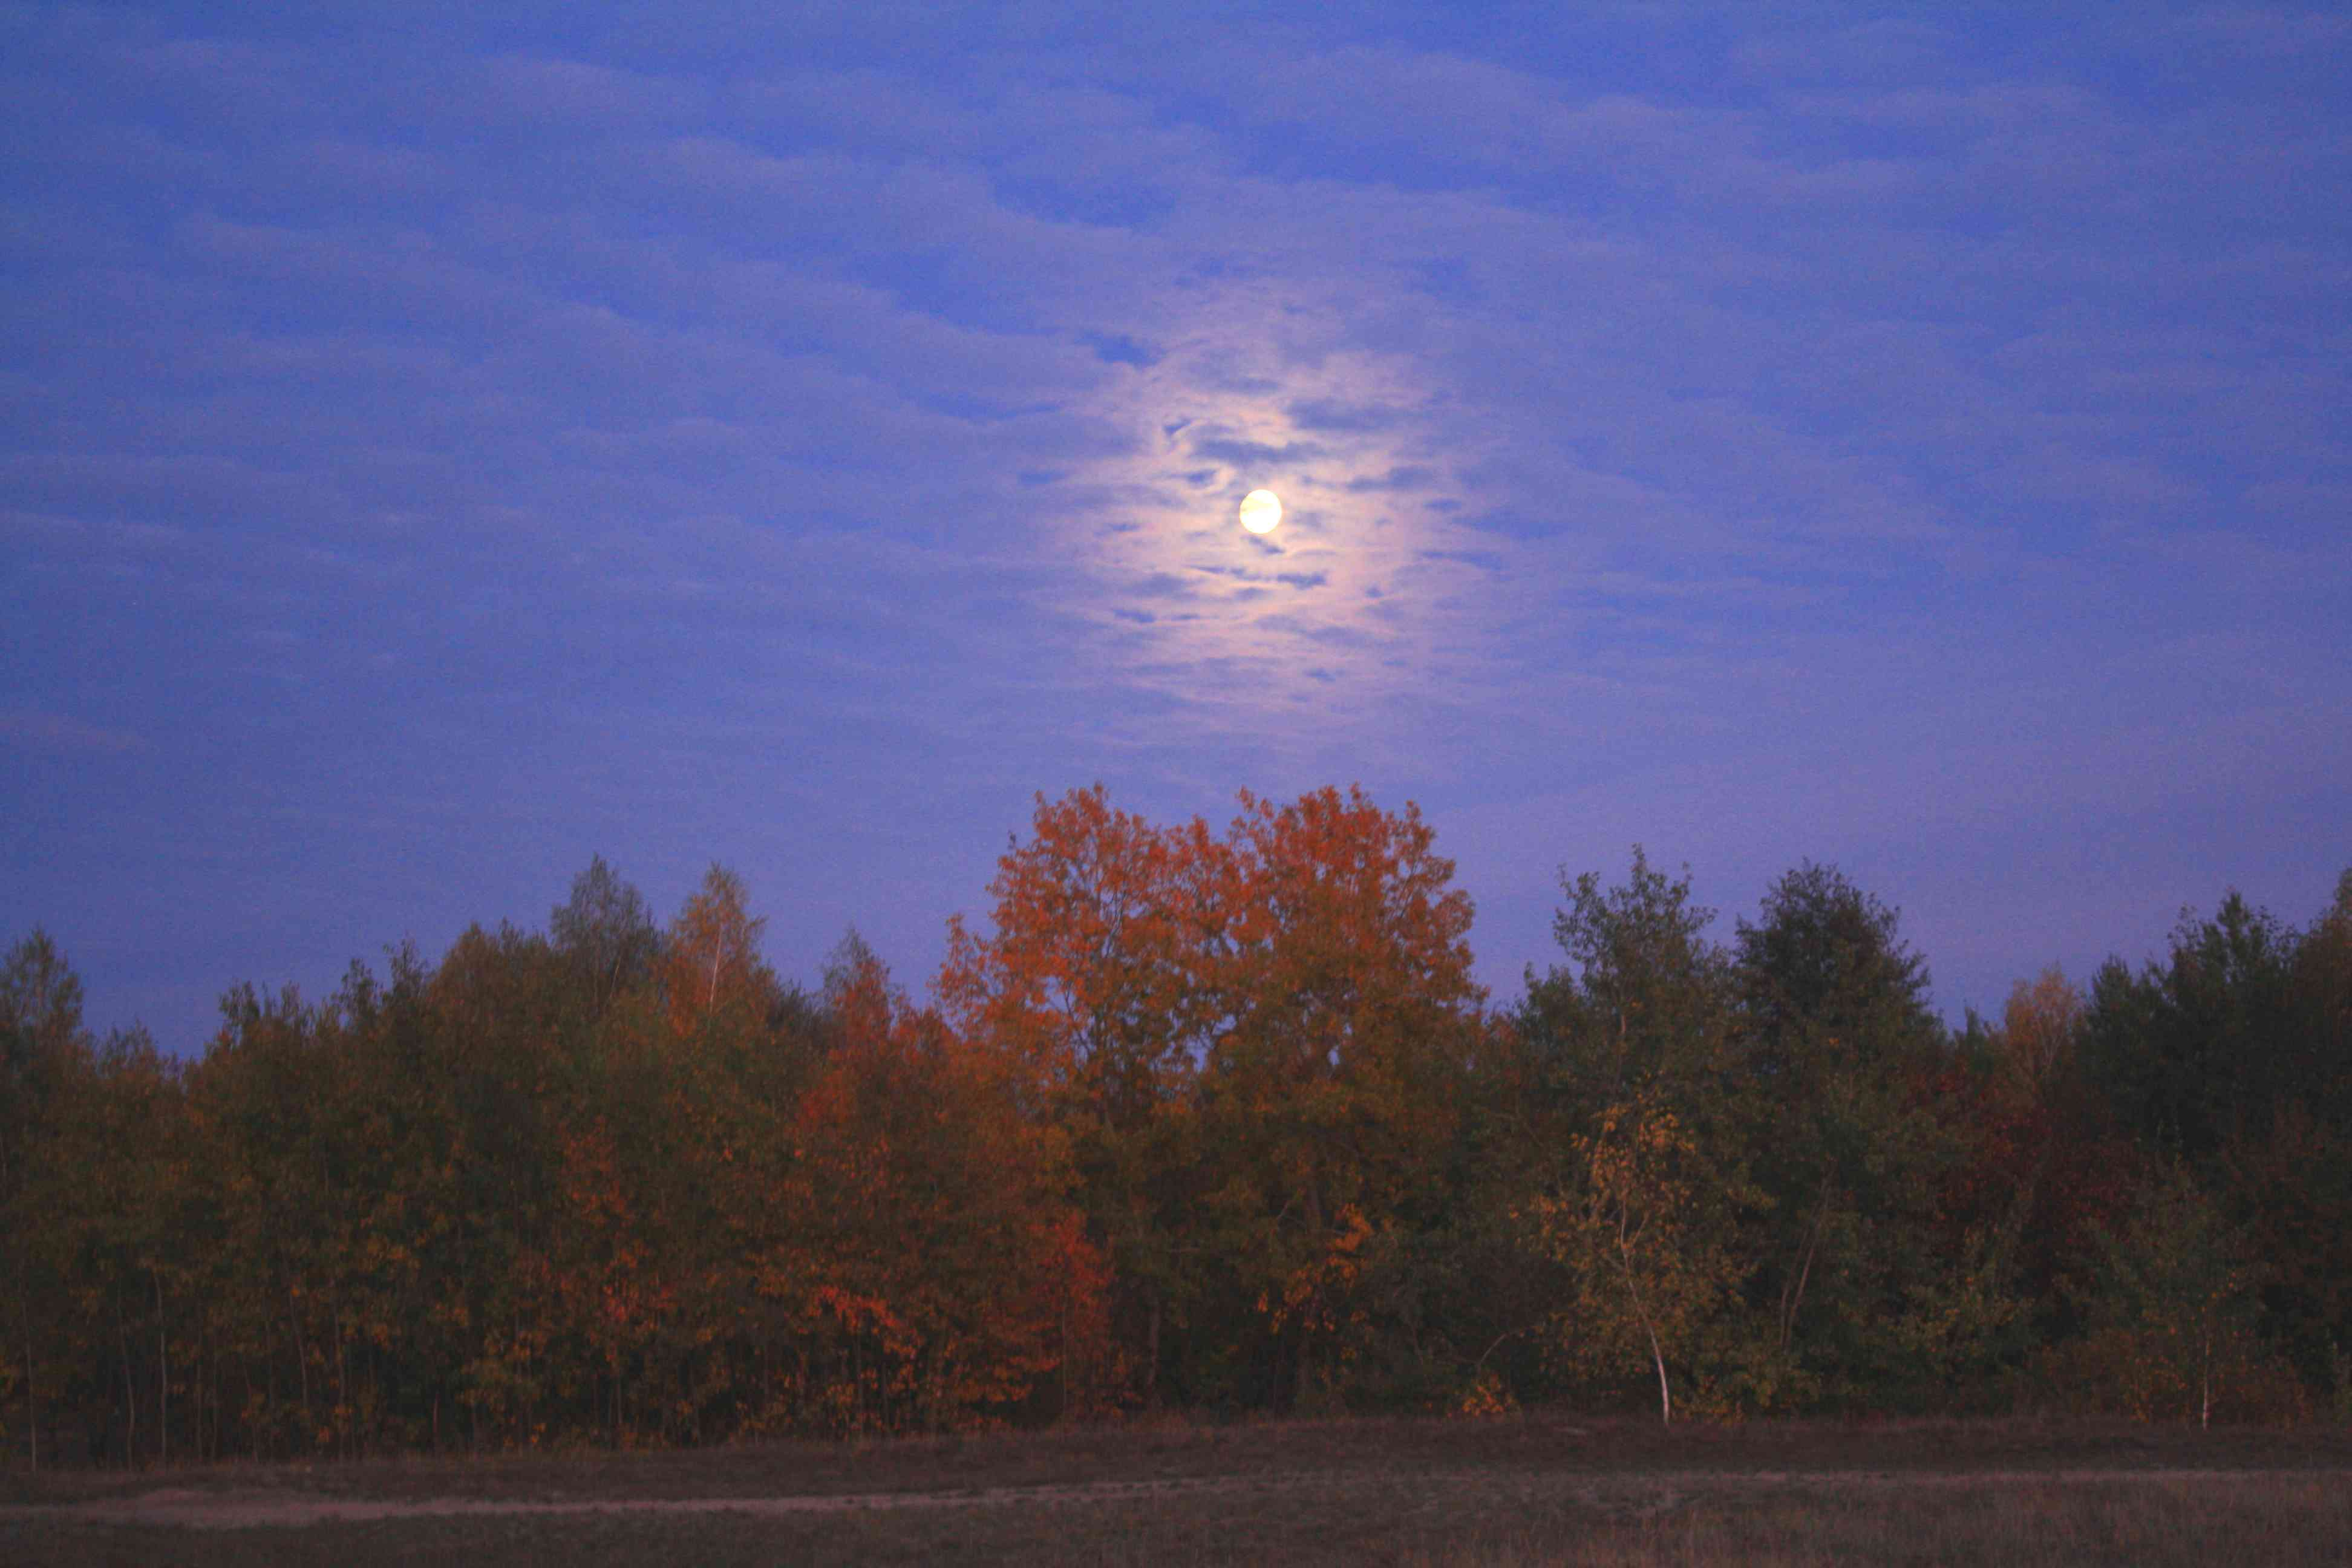 fall color in trees with moon glowing above